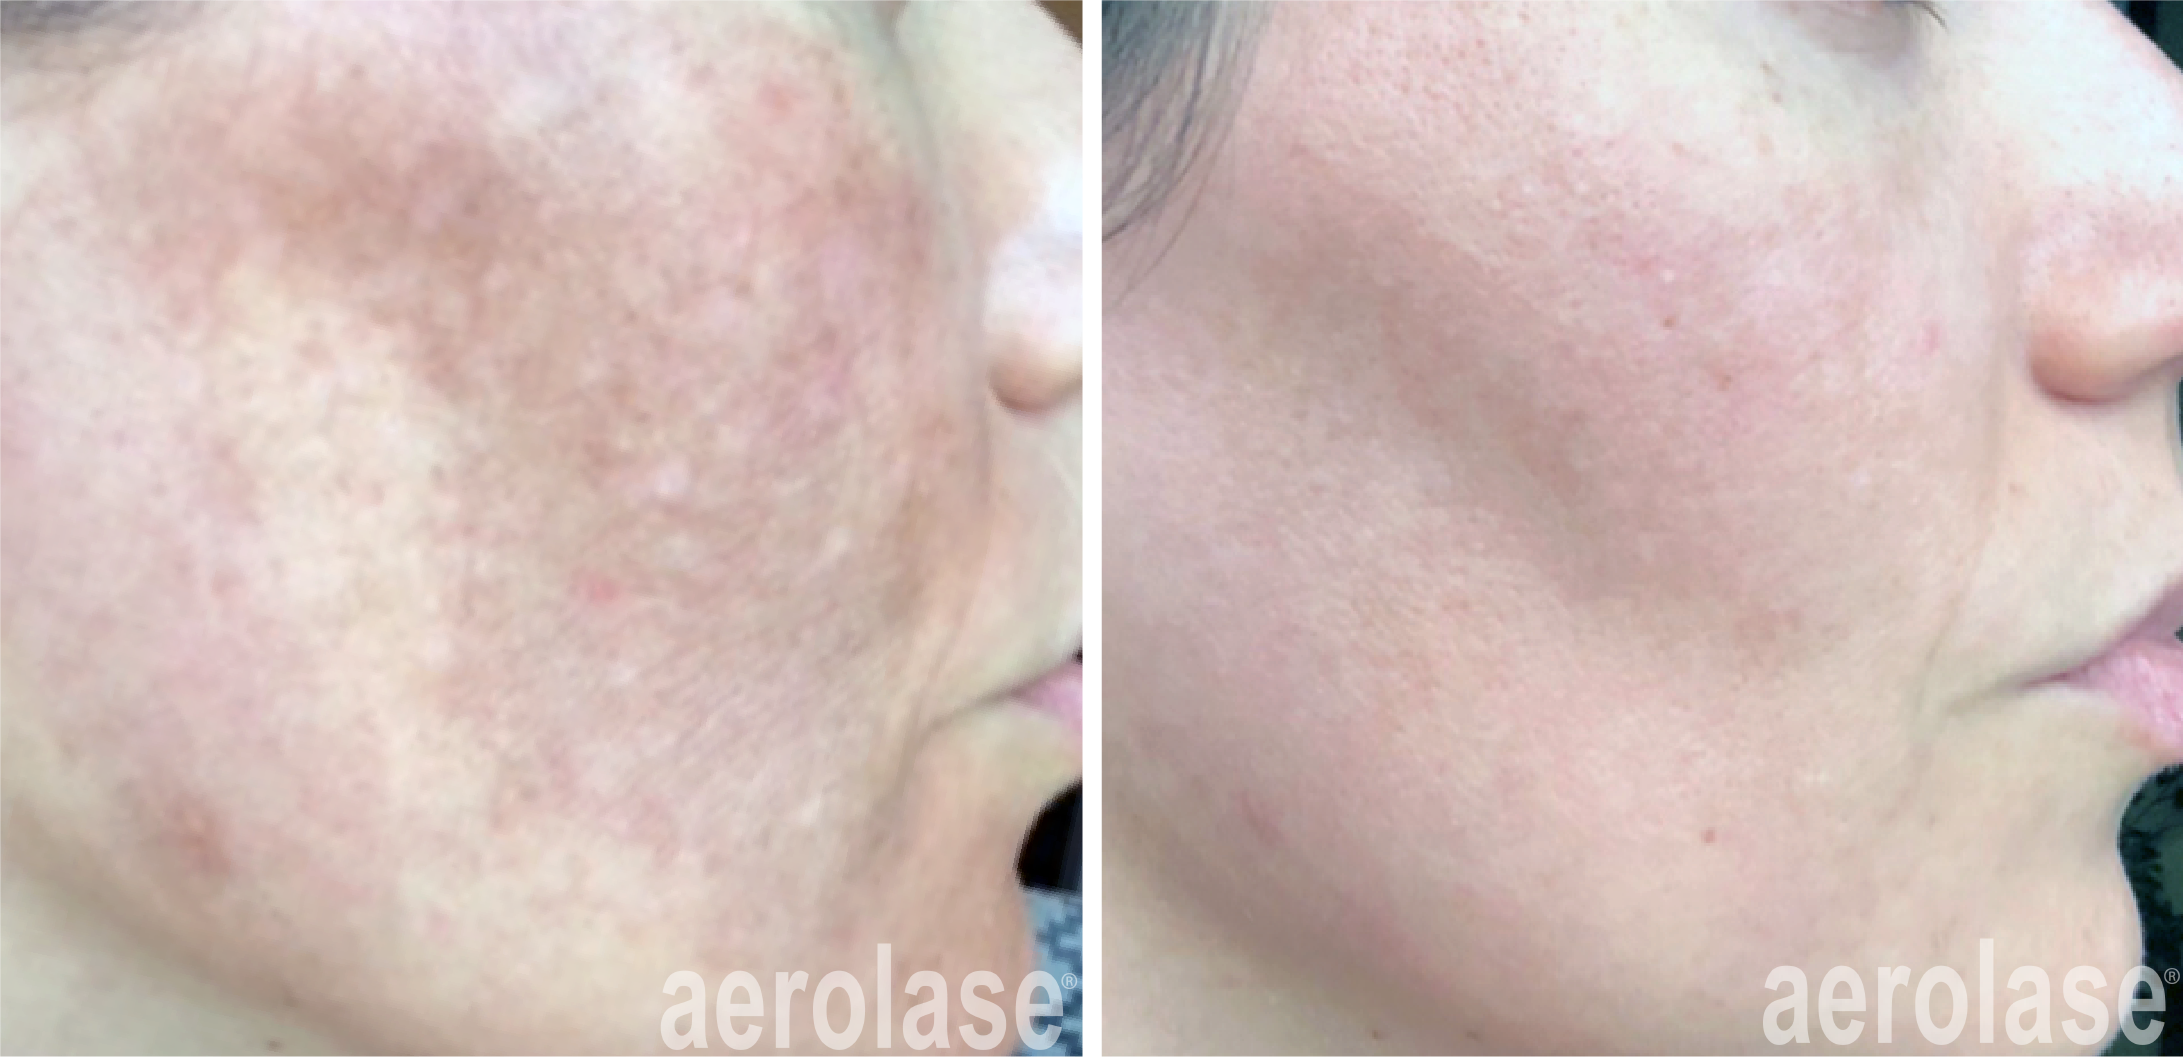 neoskin treatment for melasma in cornelius nc